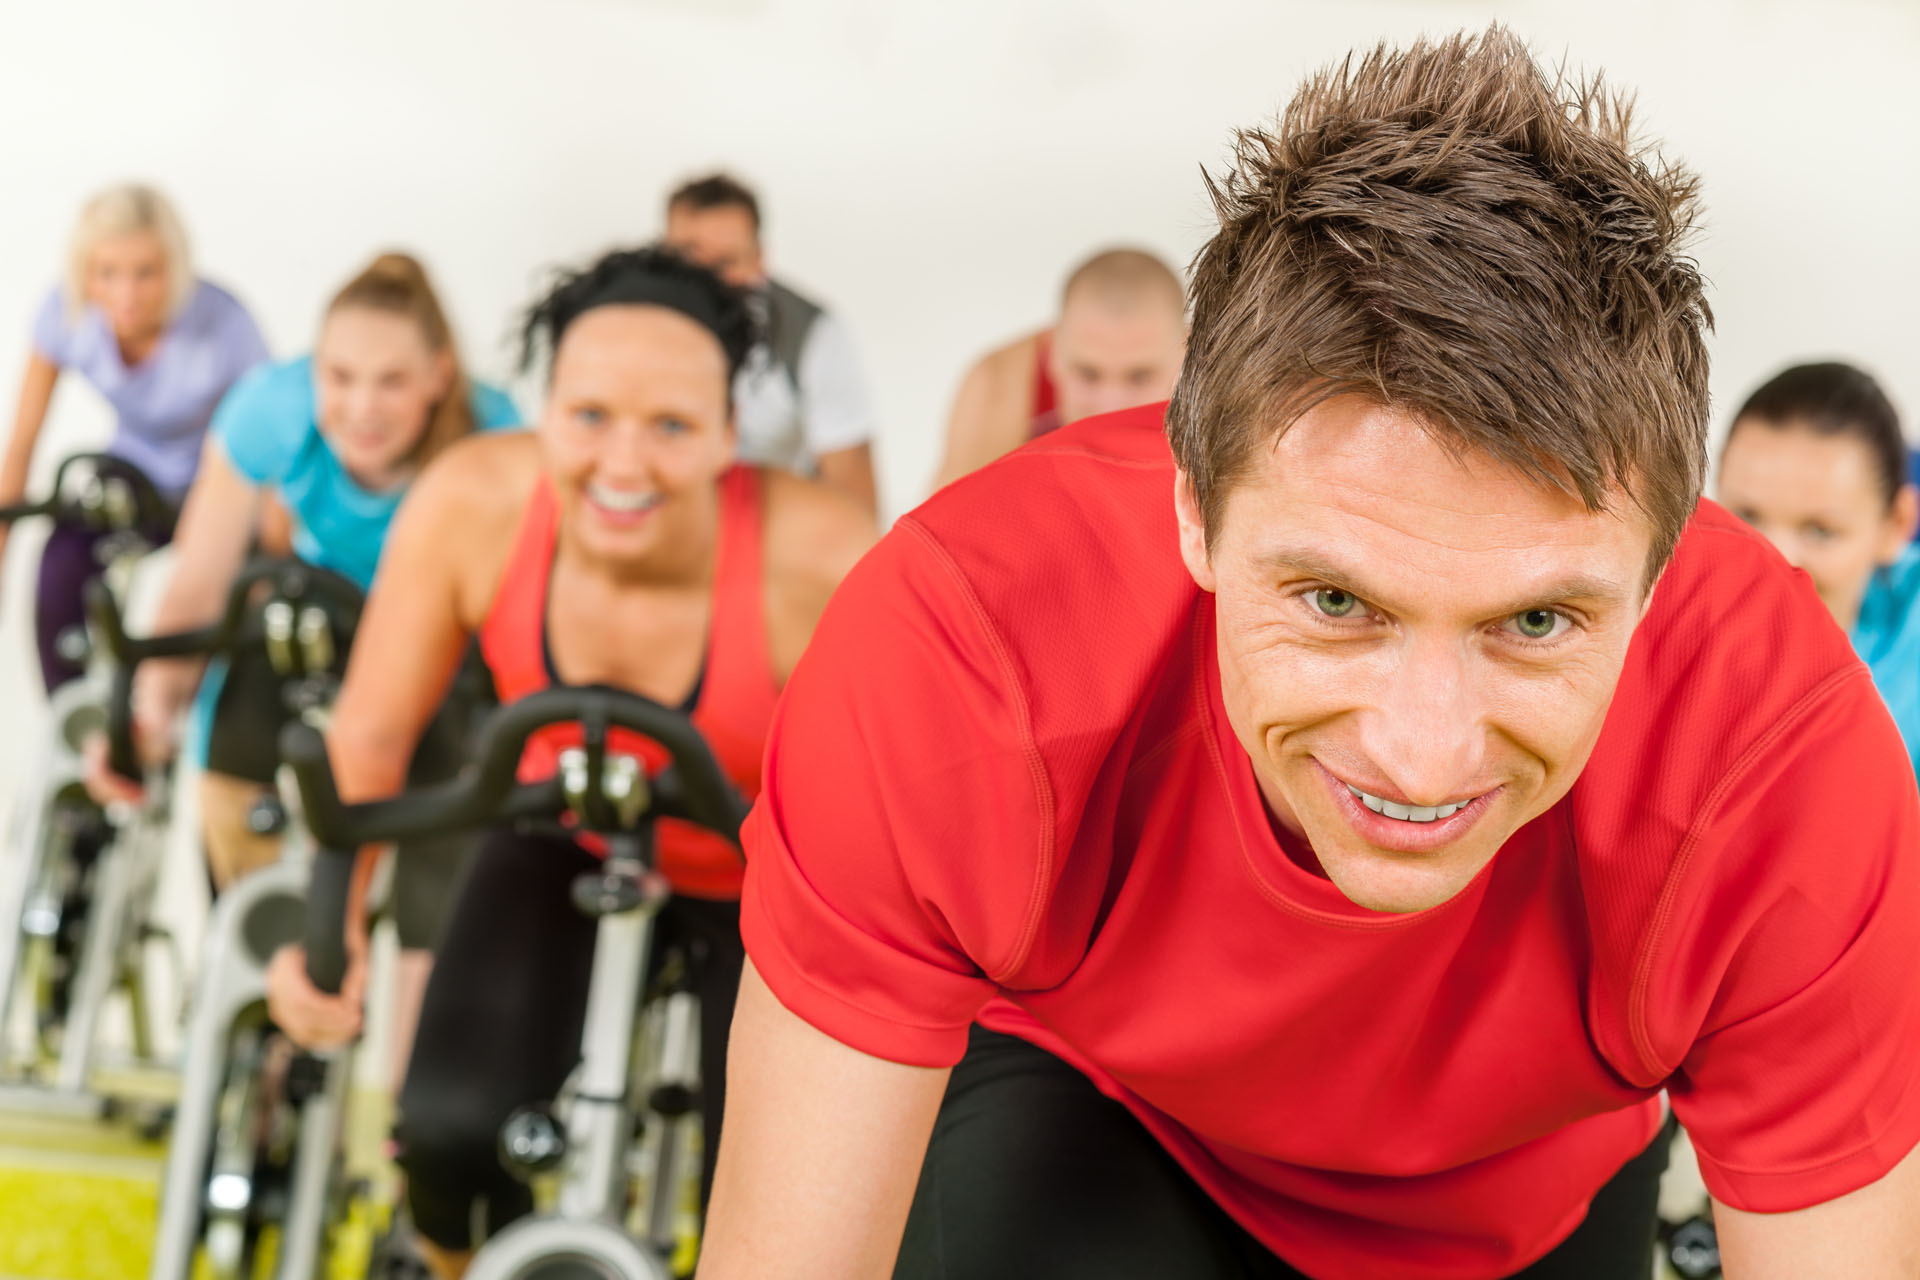 People spinning in gym or fitness club exercise cardio training